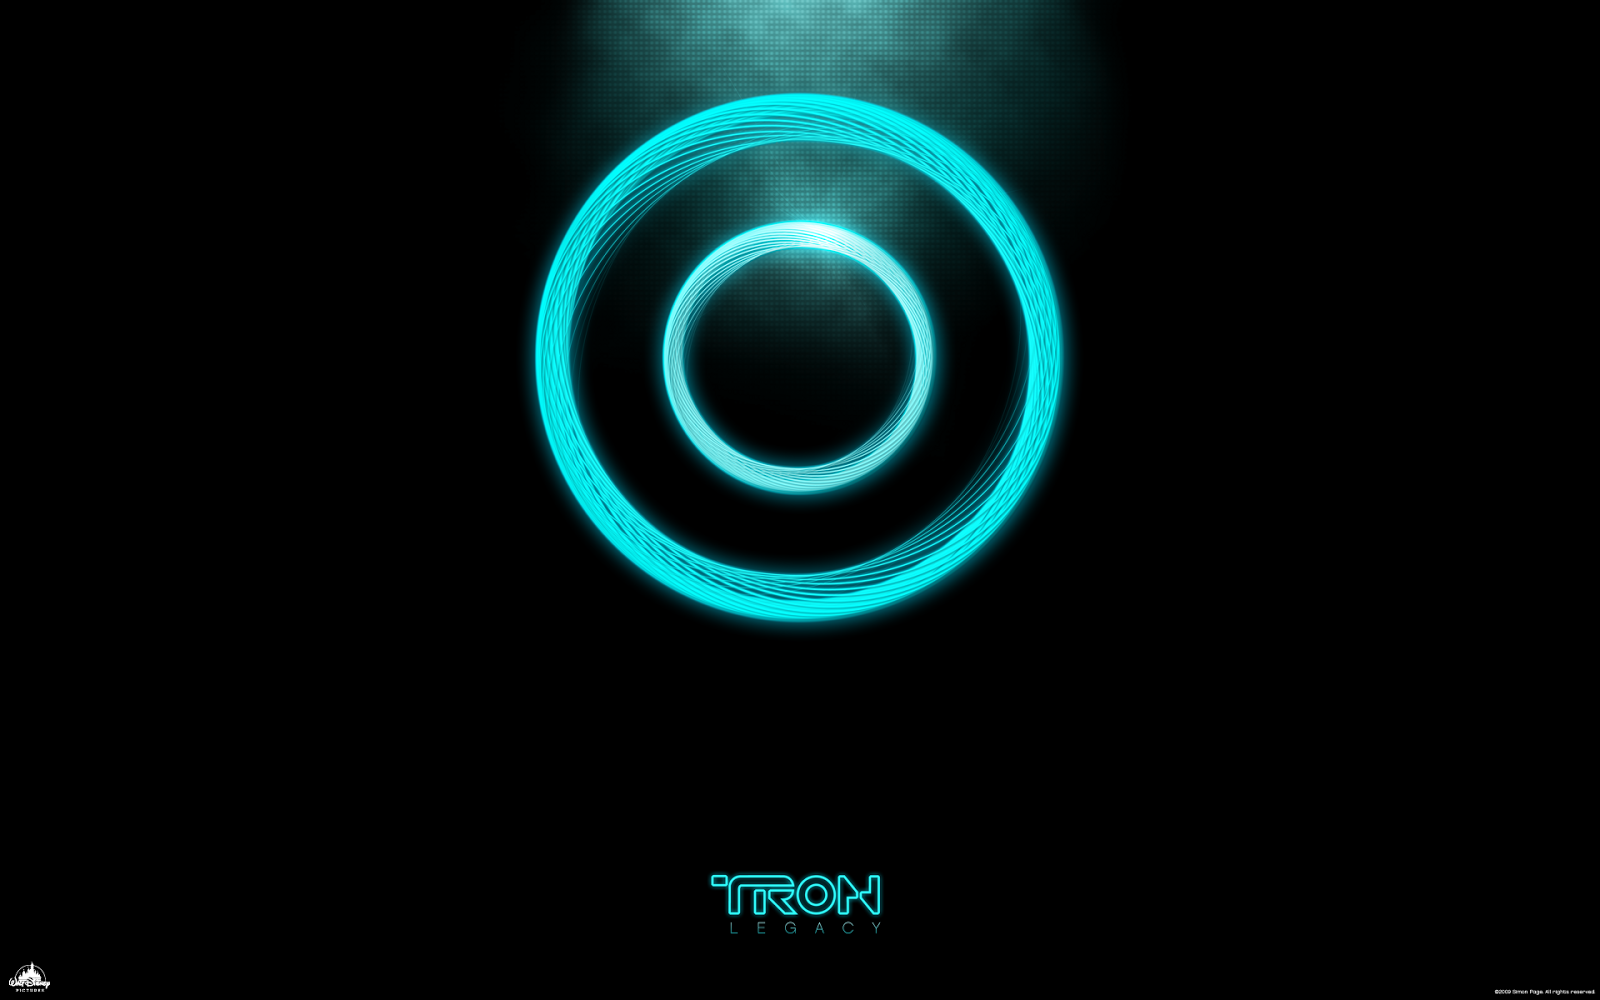 Free Hd Wallpaper For Desktop Background Tron Wallpaper